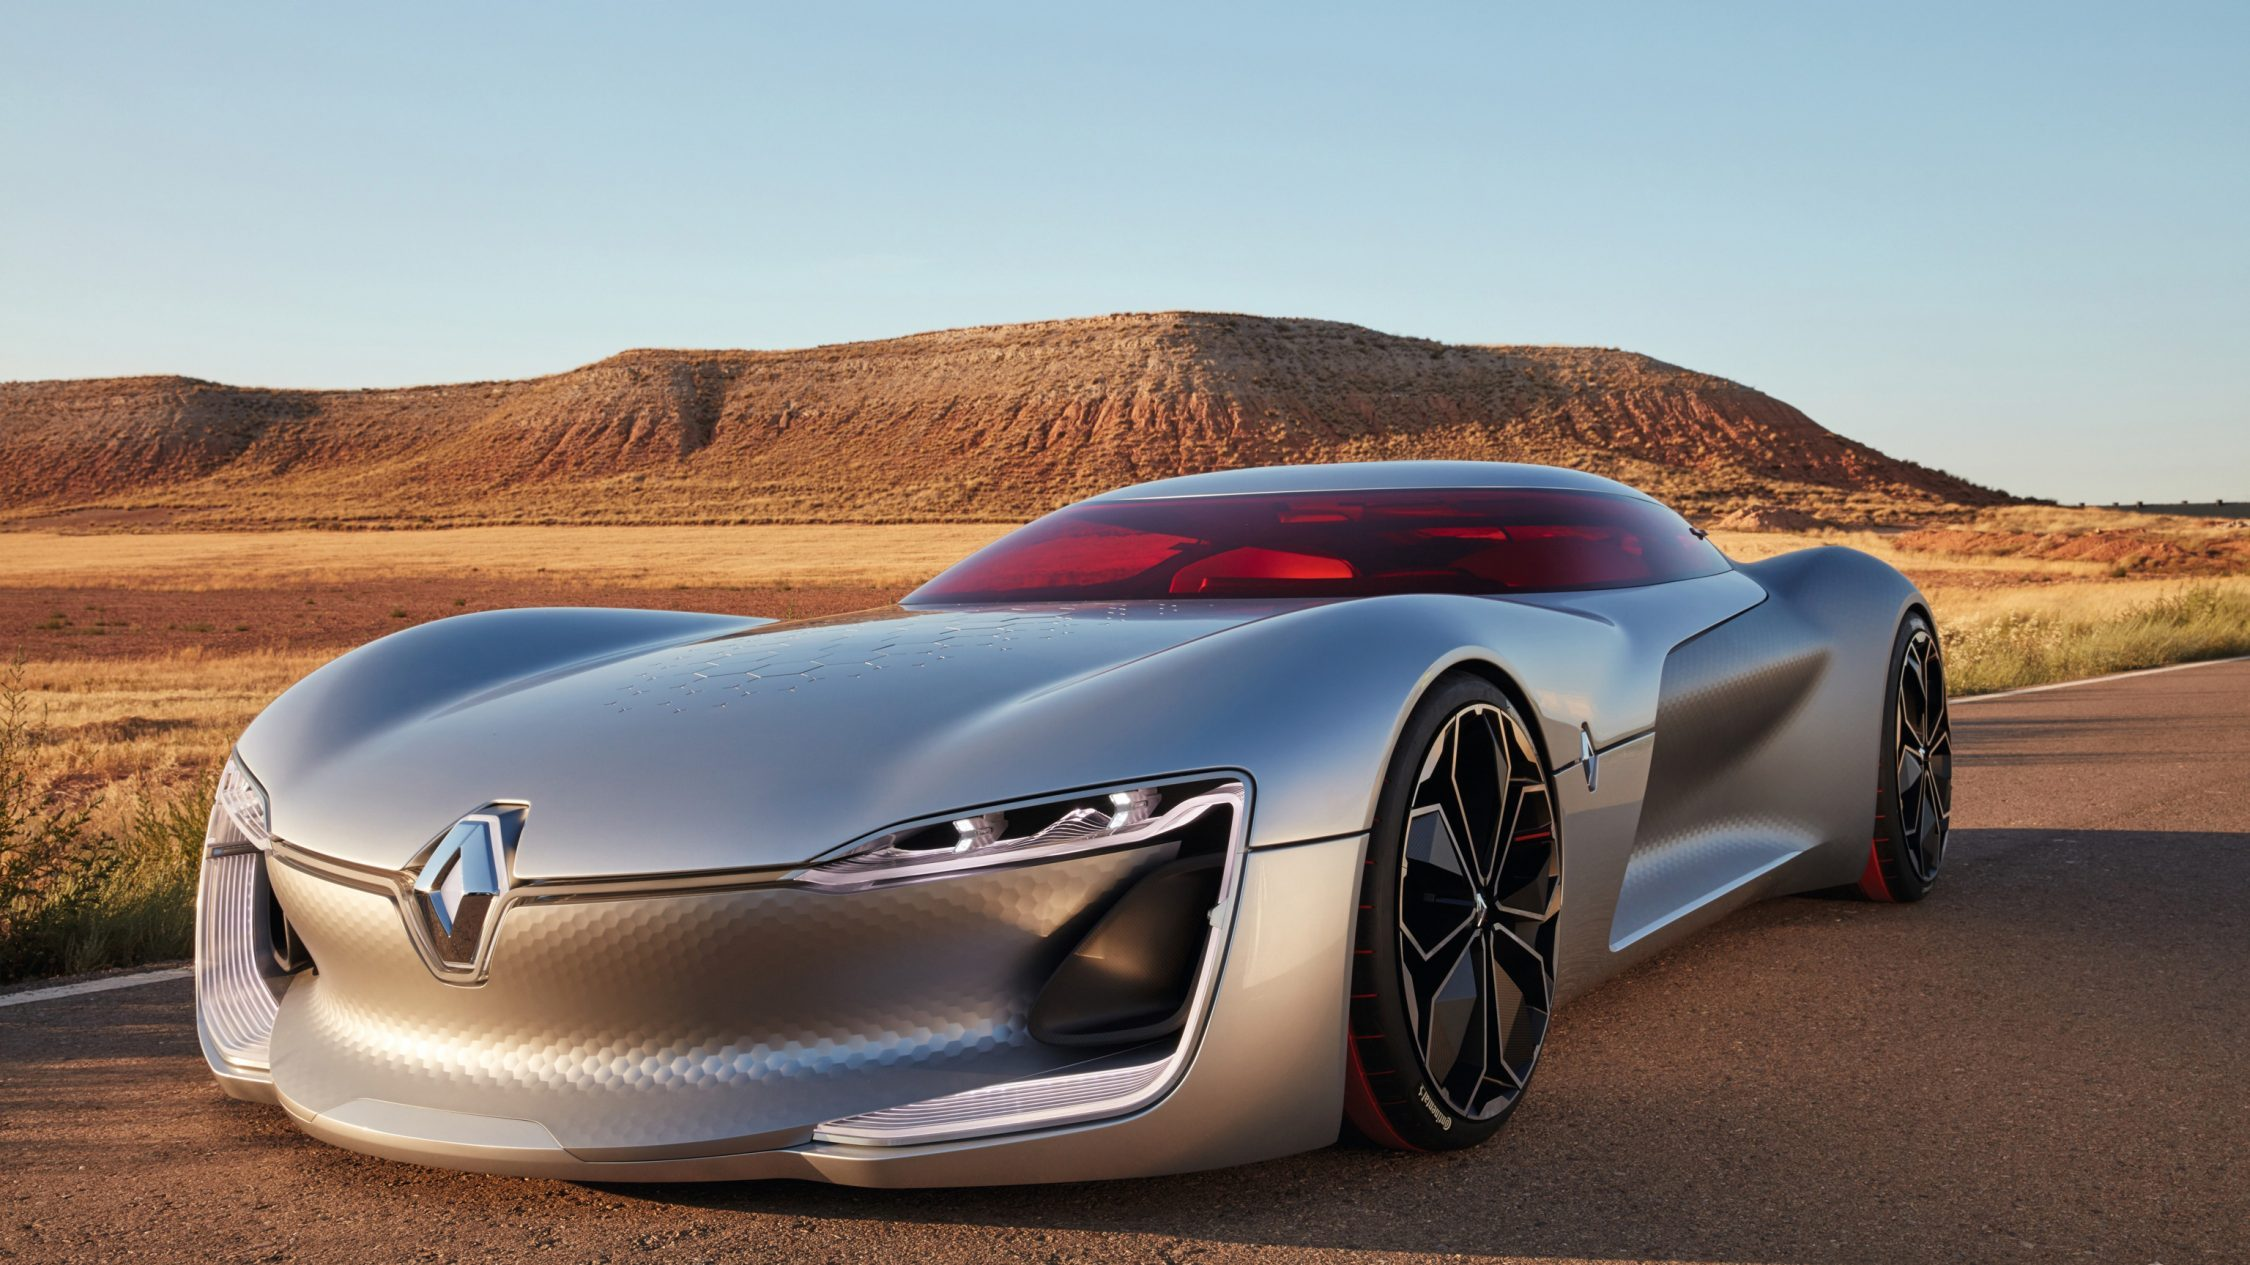 renault concept z32 image gallery -